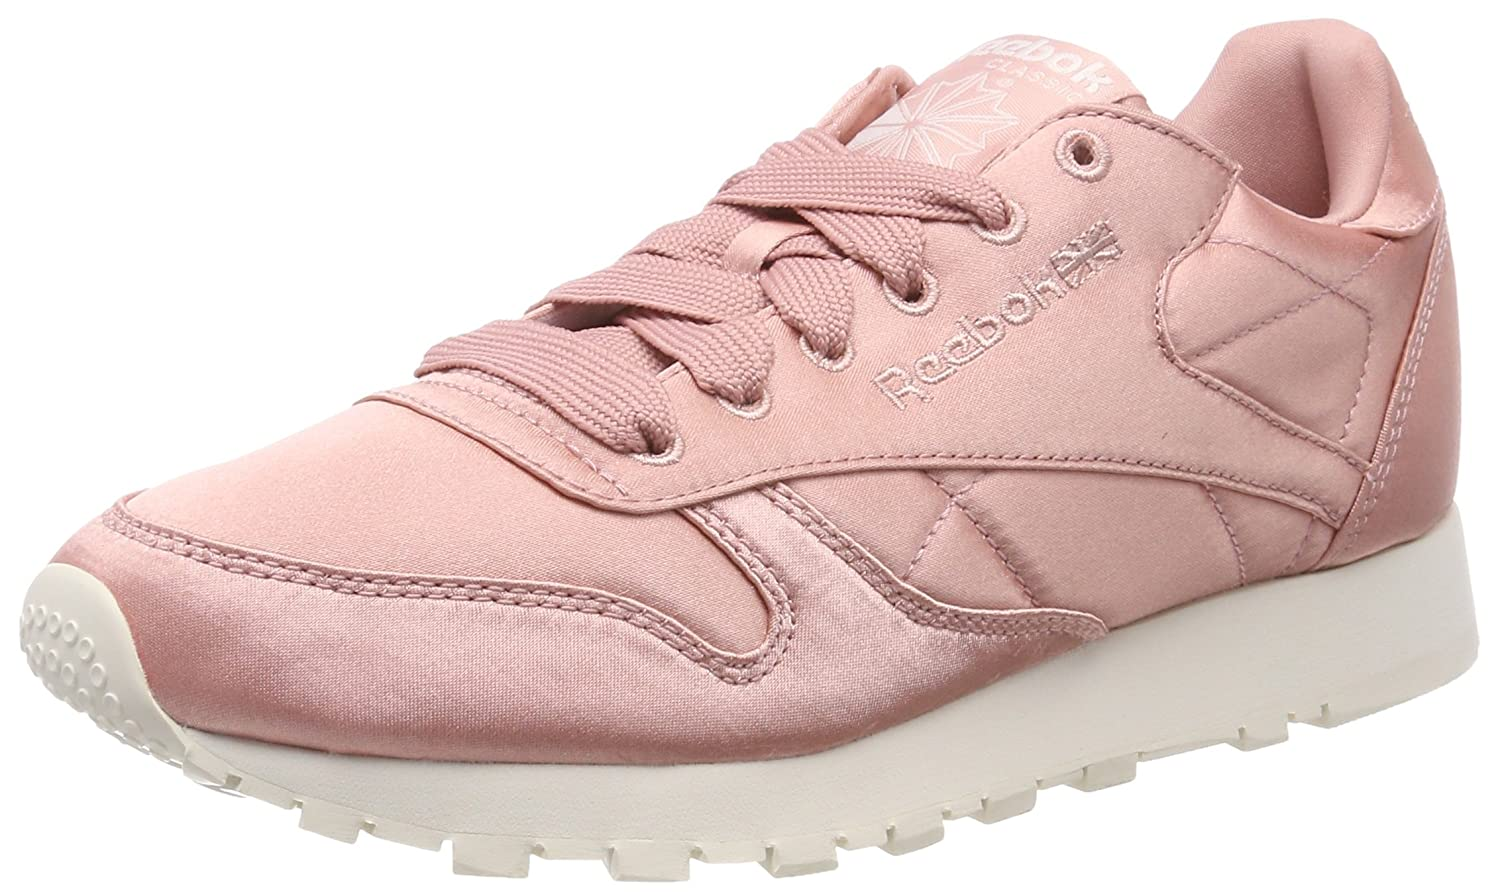 Reebok Classic Femme, Leather Satin, Sneakers Basses B07FTP7QFB Femme, Rose Rose/Blanc Rose (Chalk Pink/Classic White 000) 13bae51 - latesttechnology.space